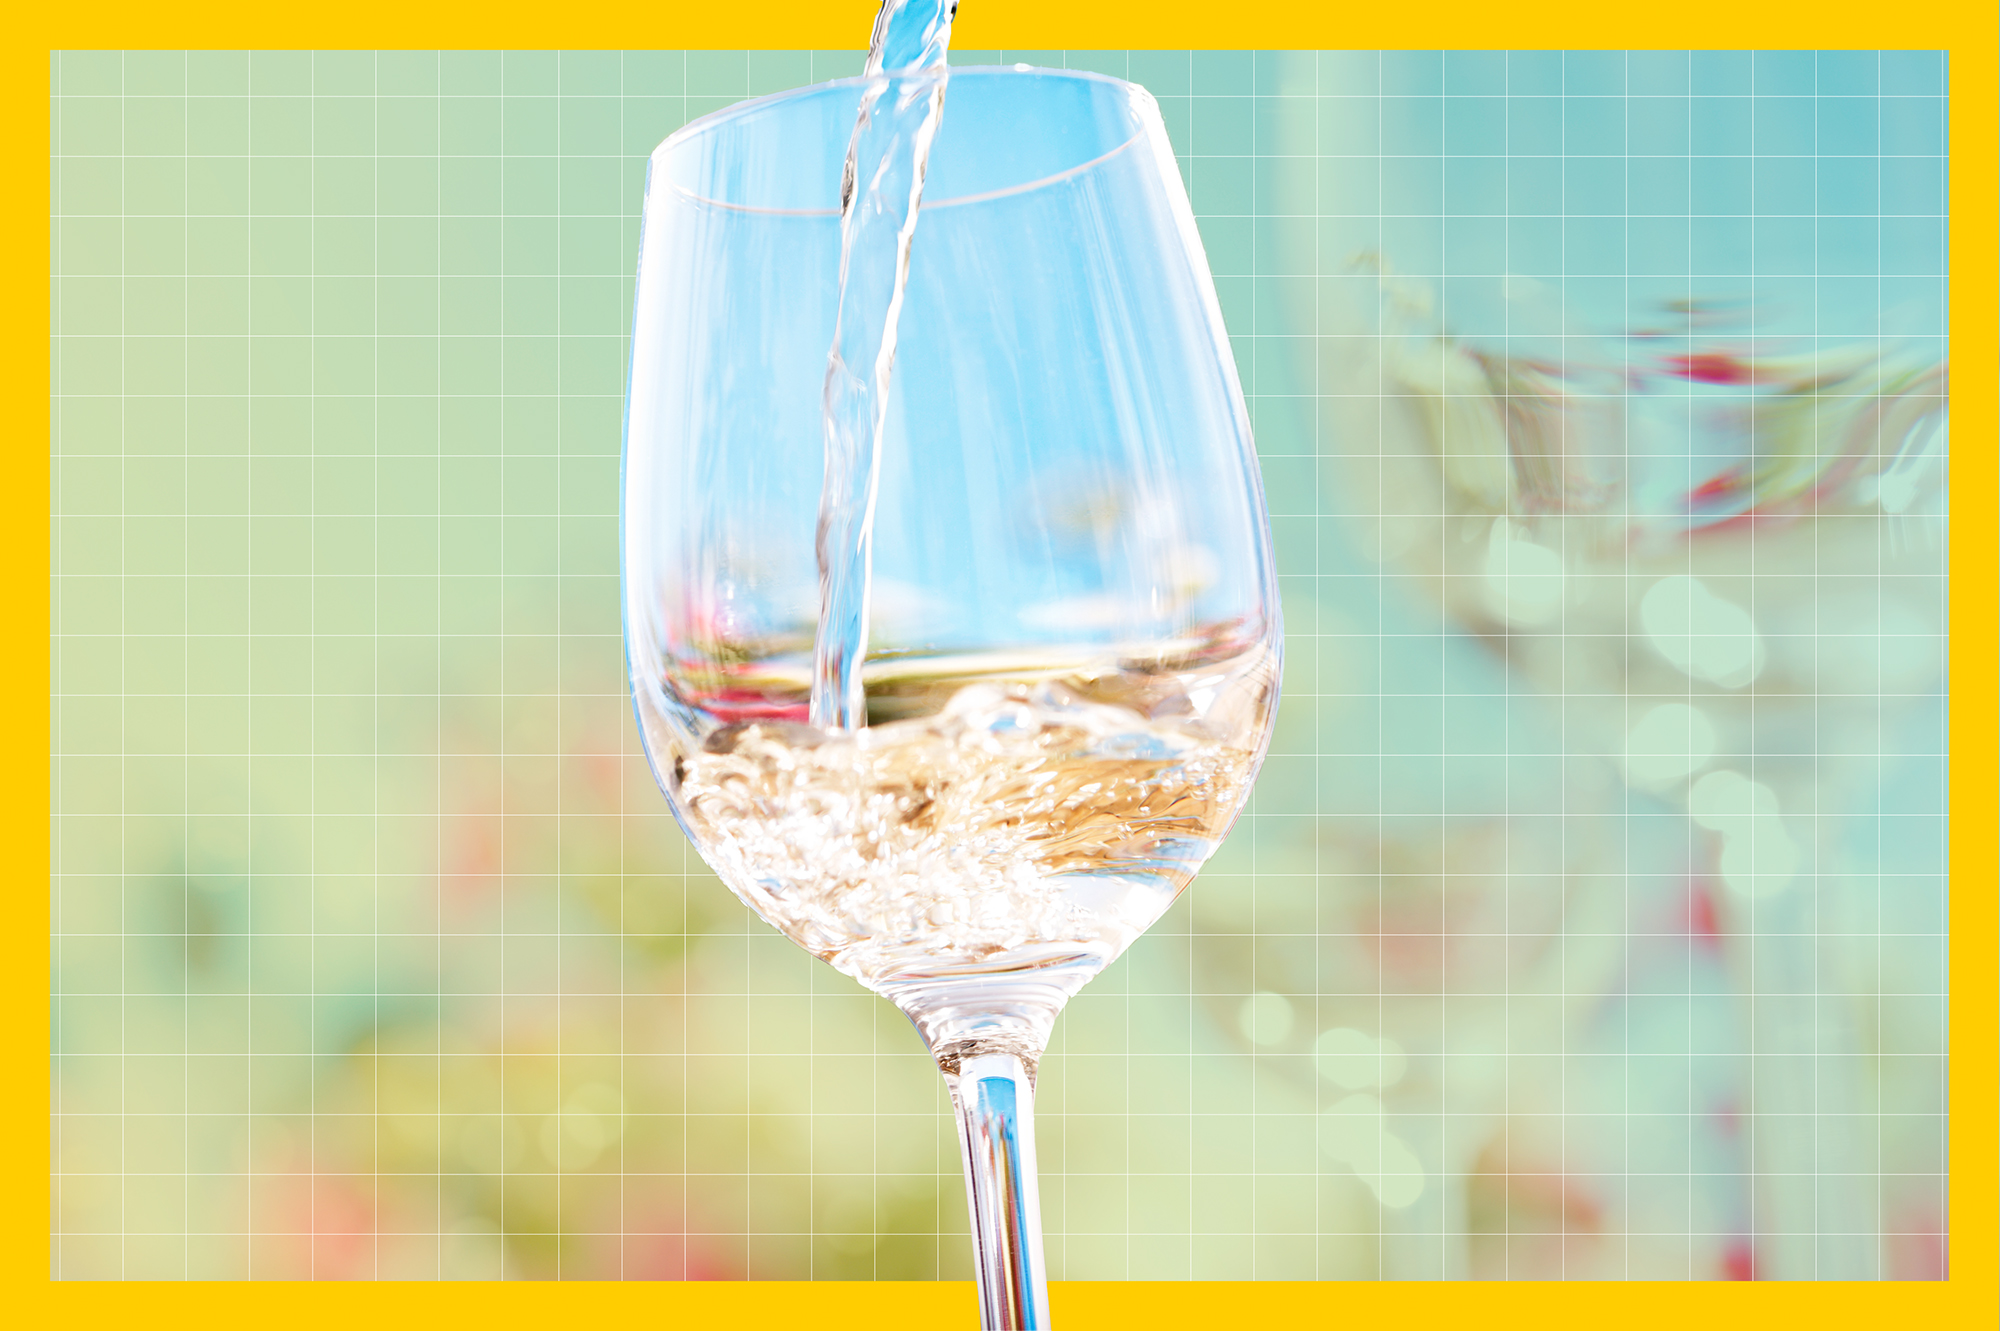 wine being poured into a wine glass on a hot summer day